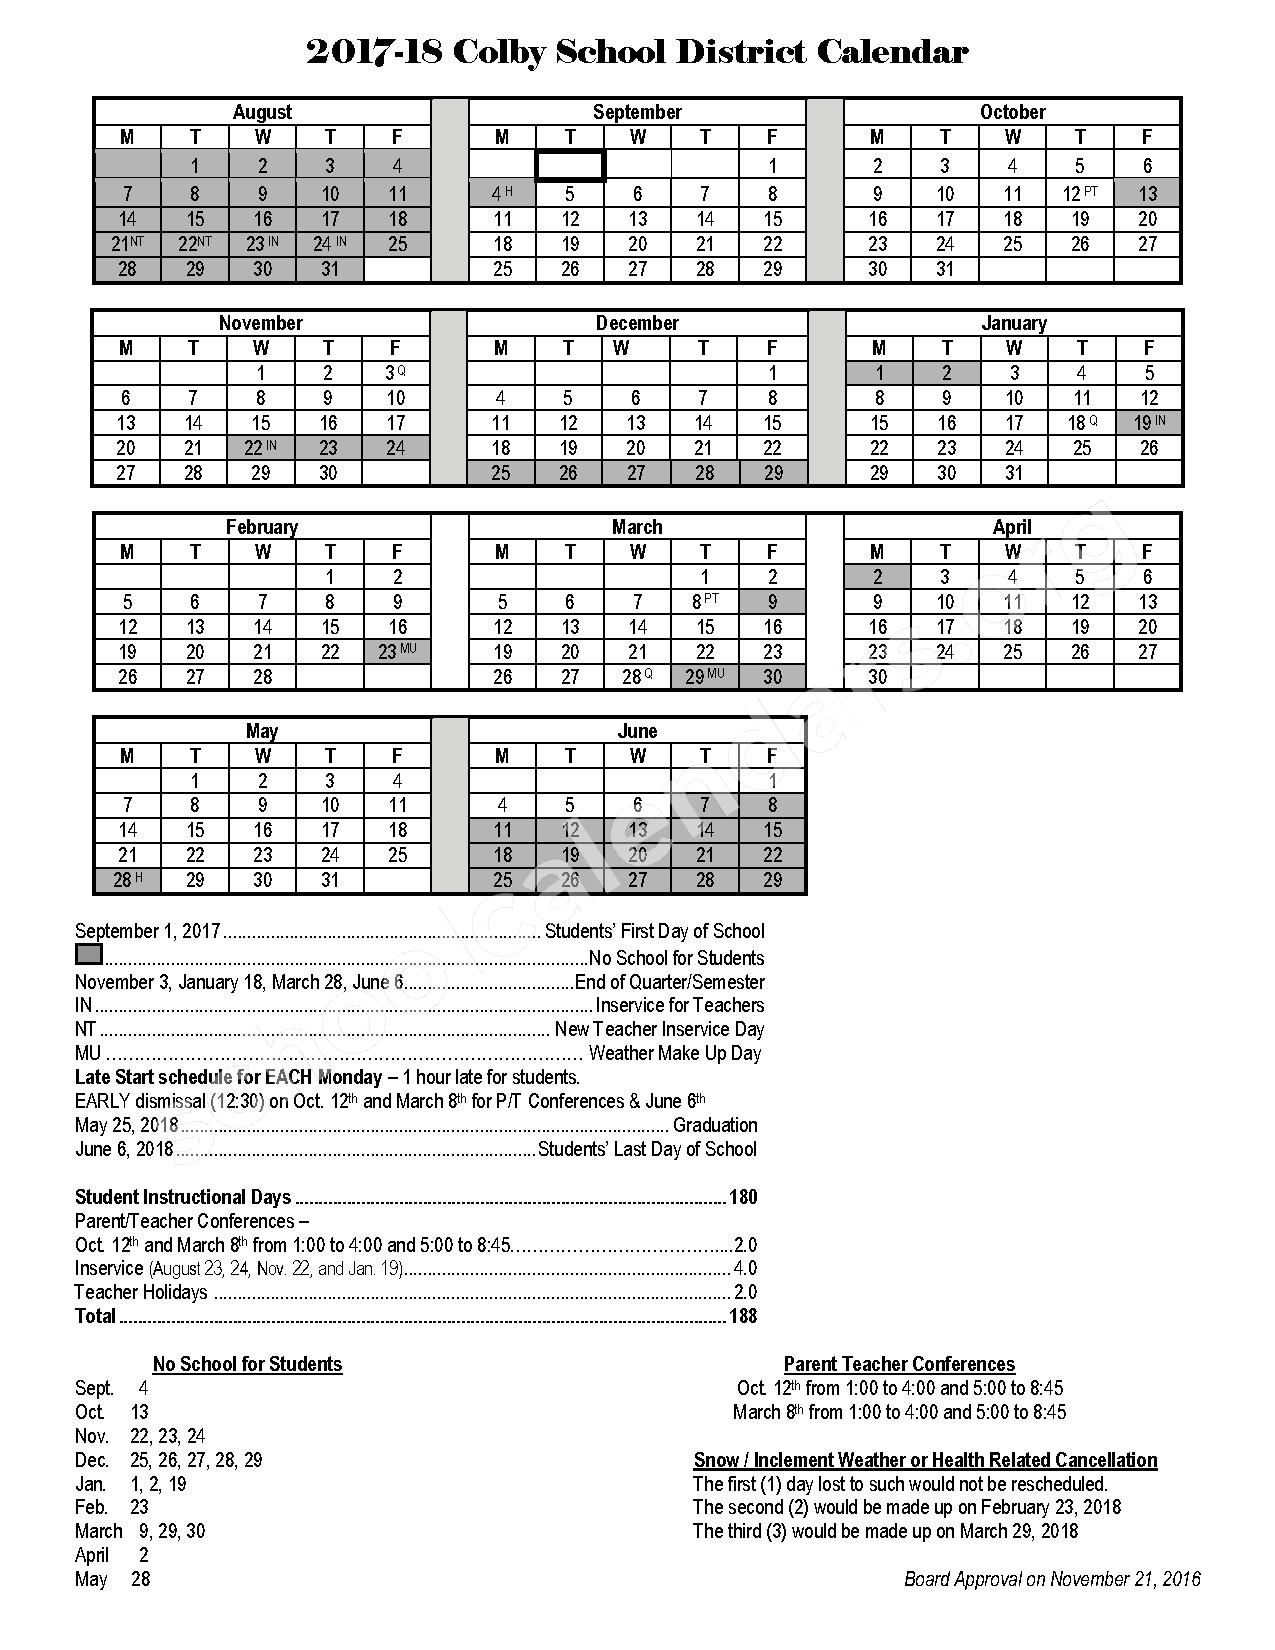 2017 - 2018 School Calendar – Colby School District – page 1